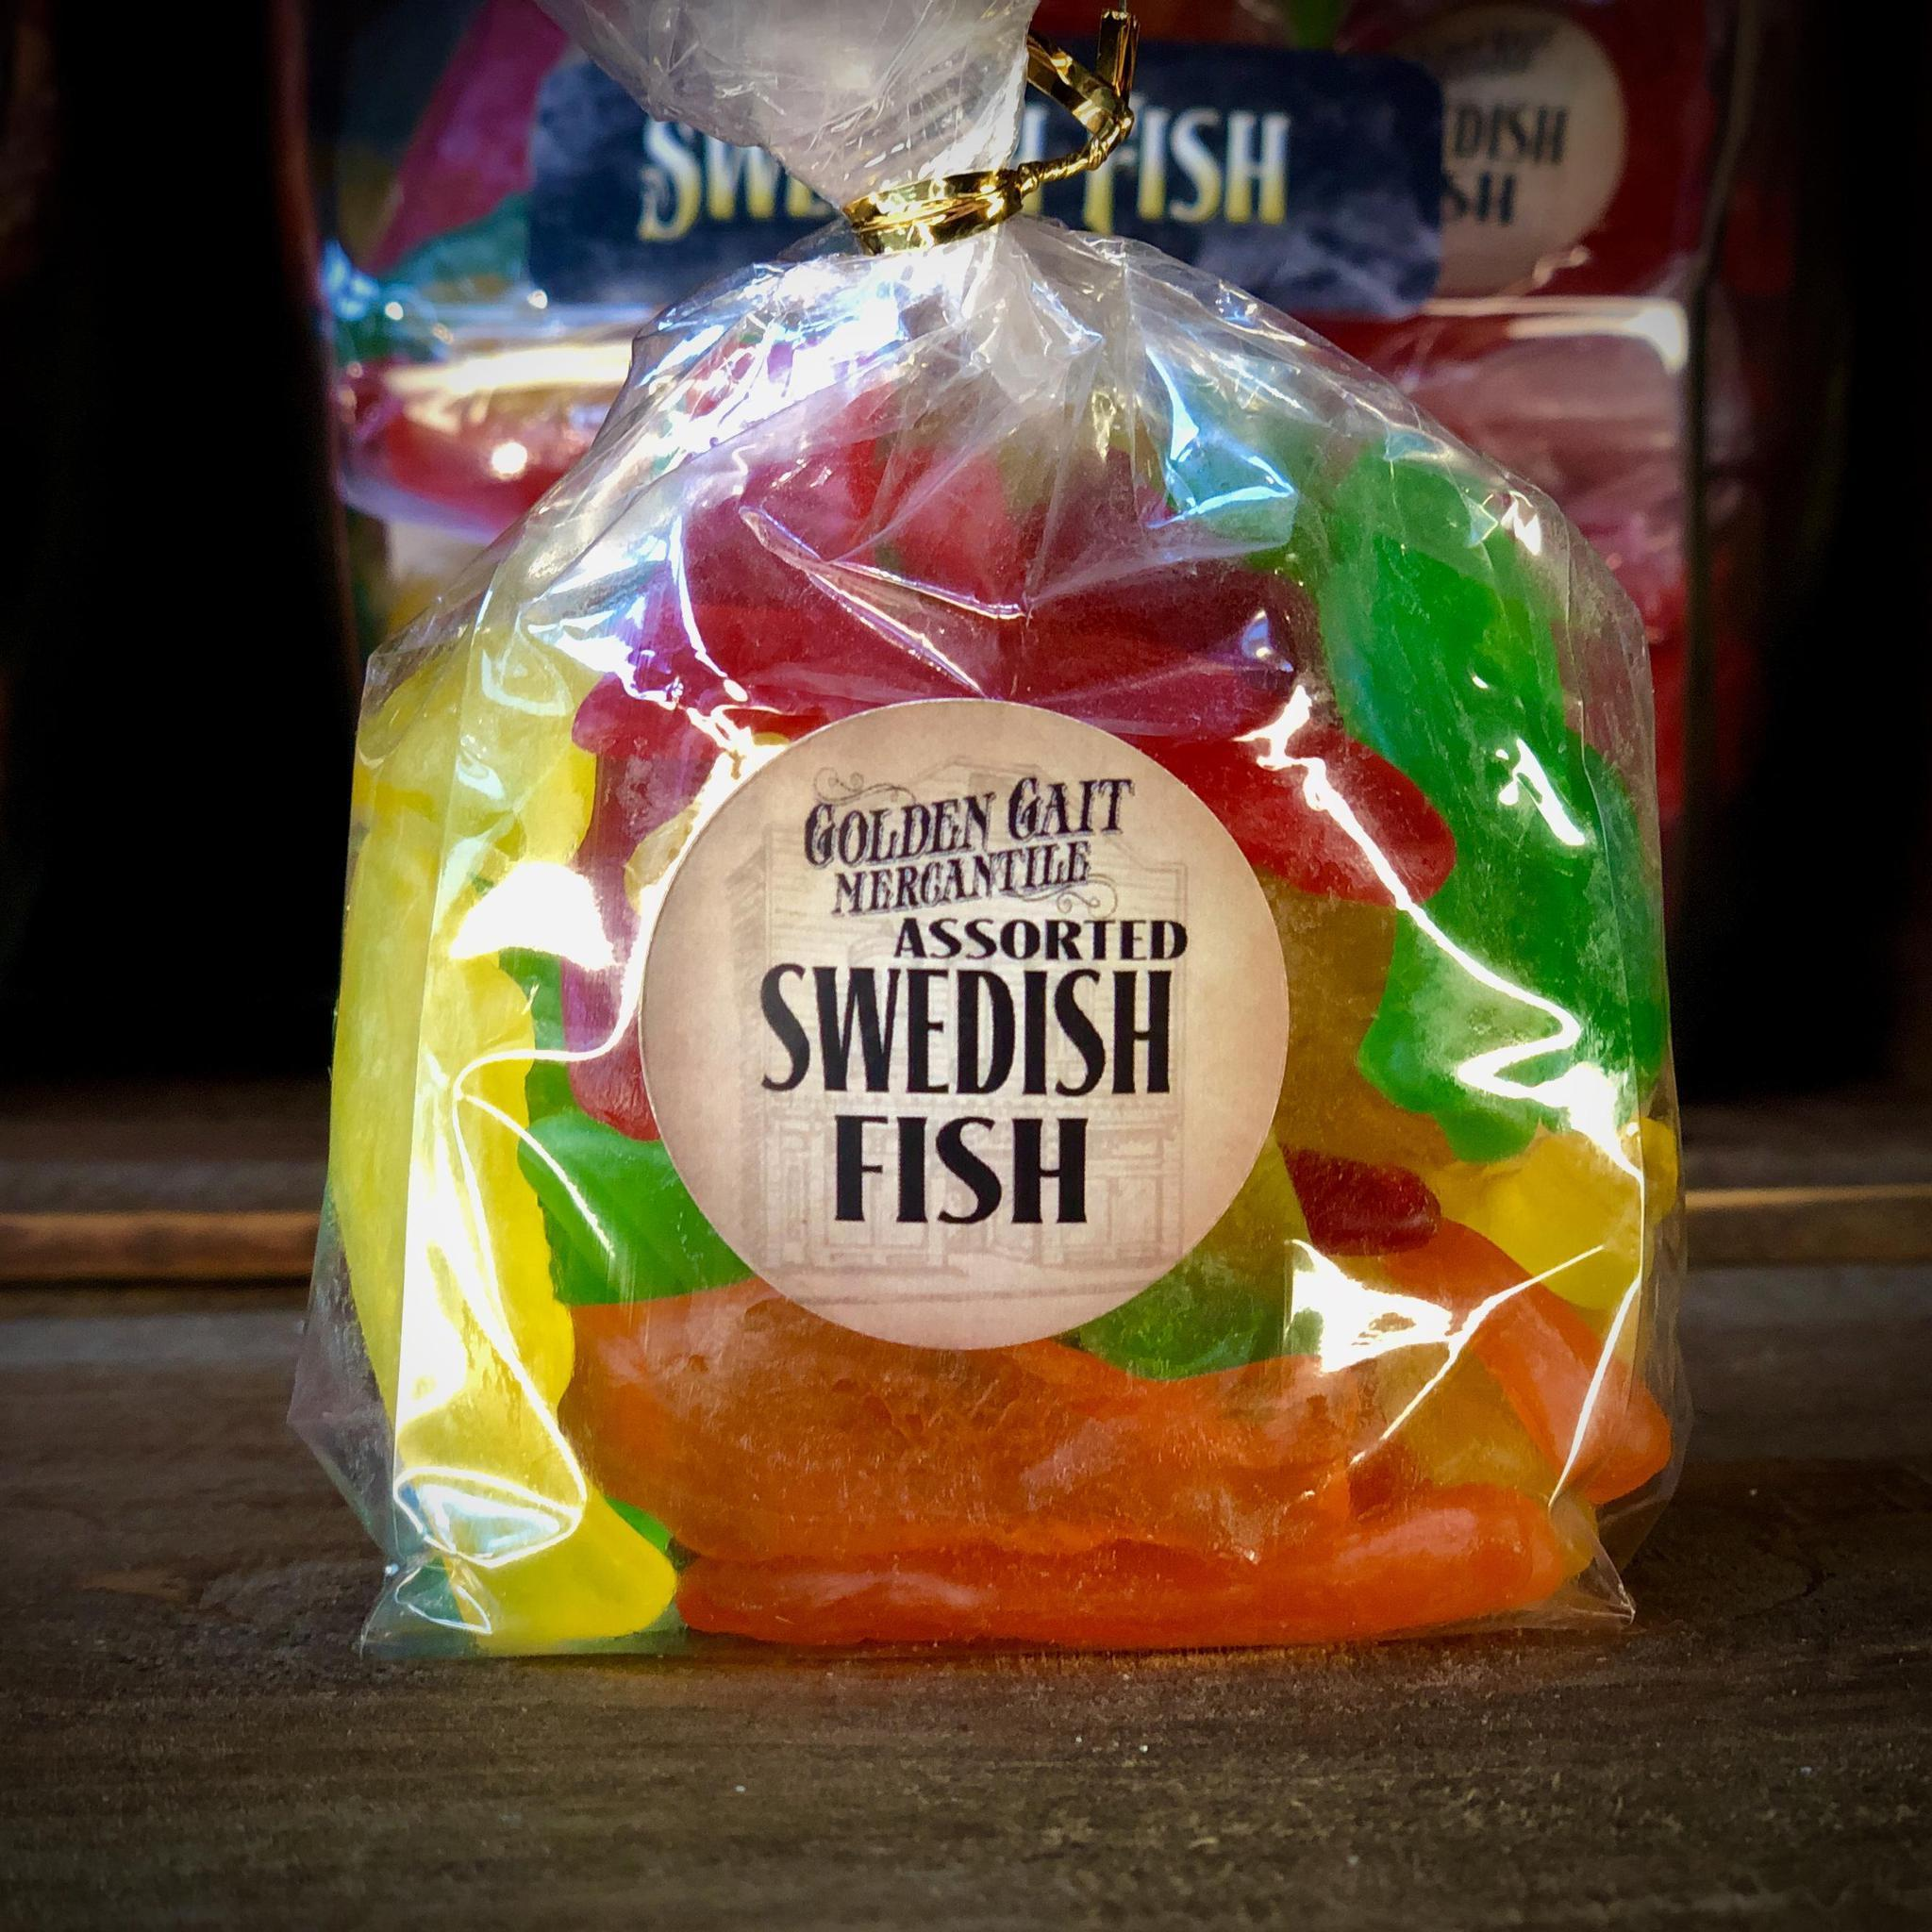 Swedish Fish Assorted  By The Golden Gait Mercantile